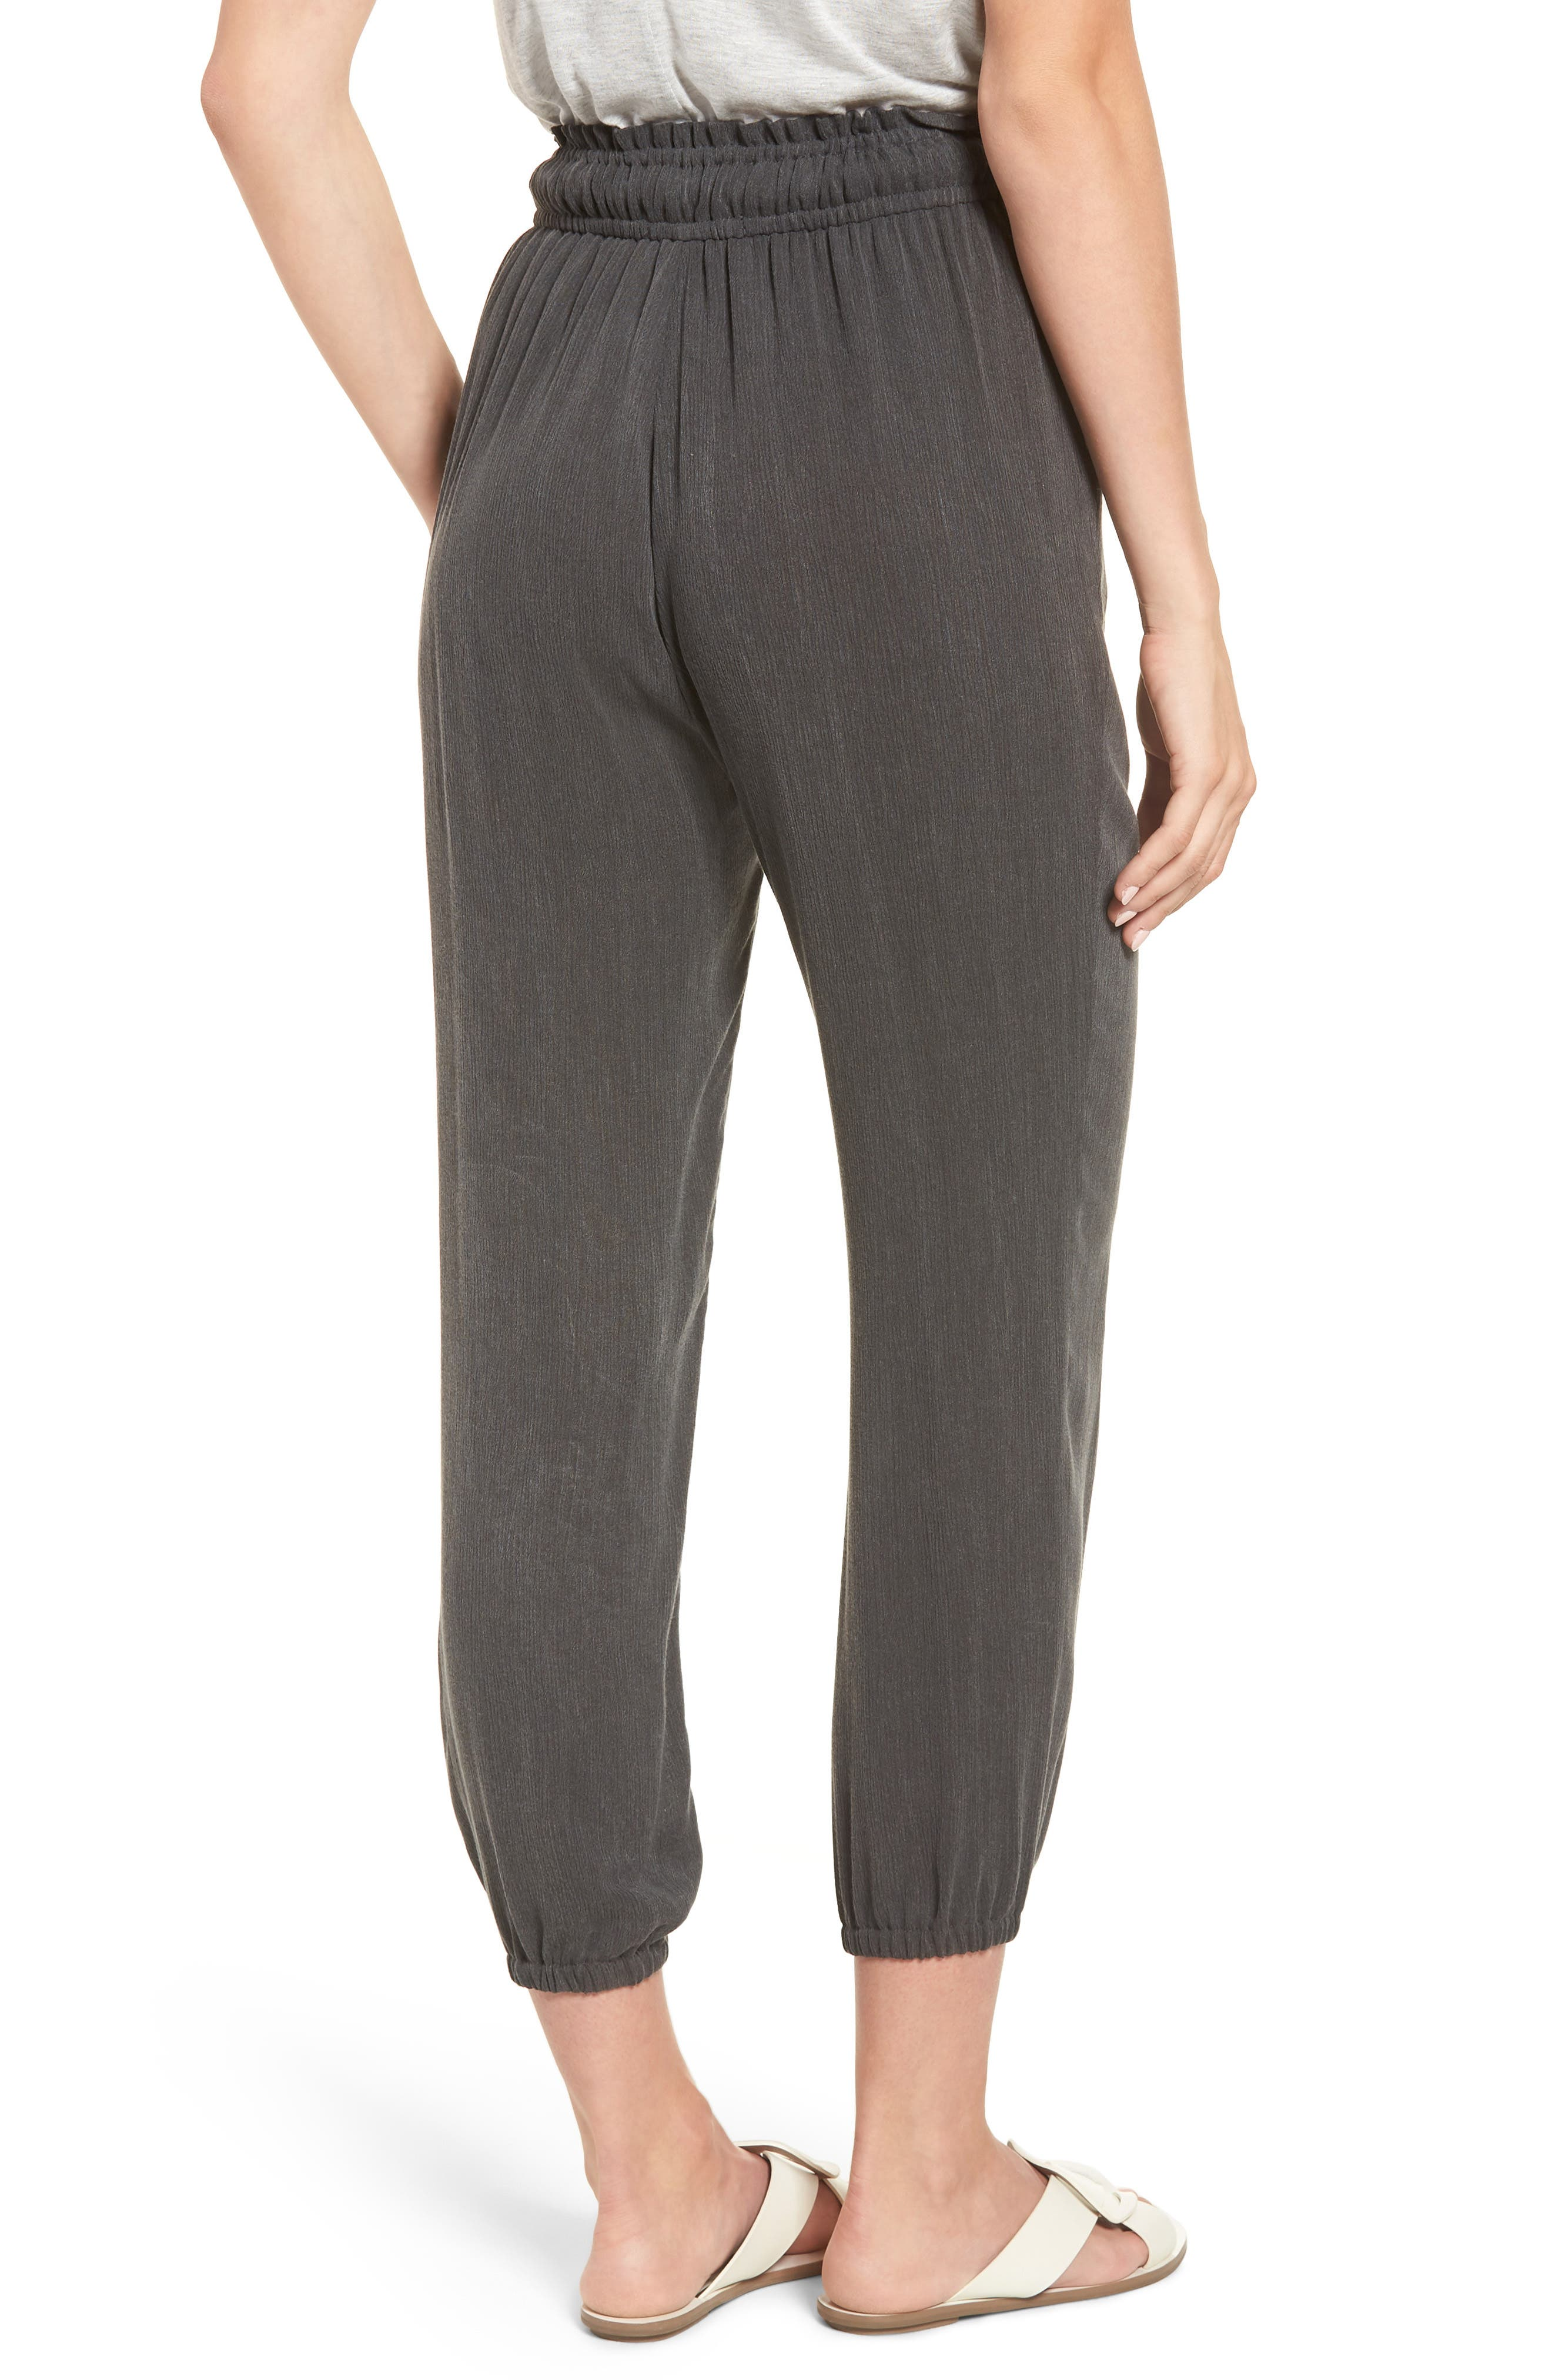 x Hi Sugarplum! Hanalei Soft Jogger Pants,                             Alternate thumbnail 2, color,                             001